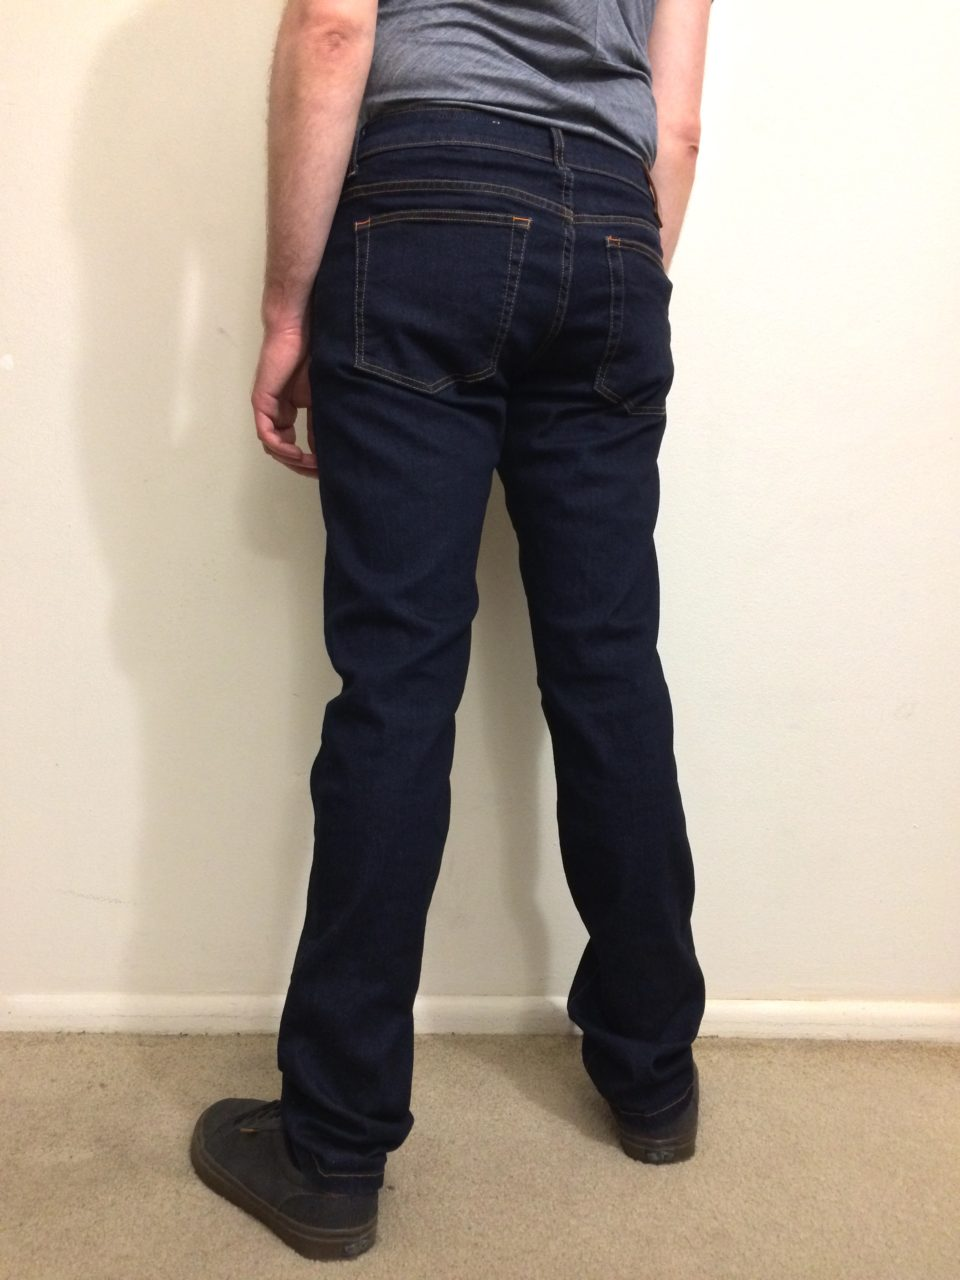 Aviator USA Jeans back view